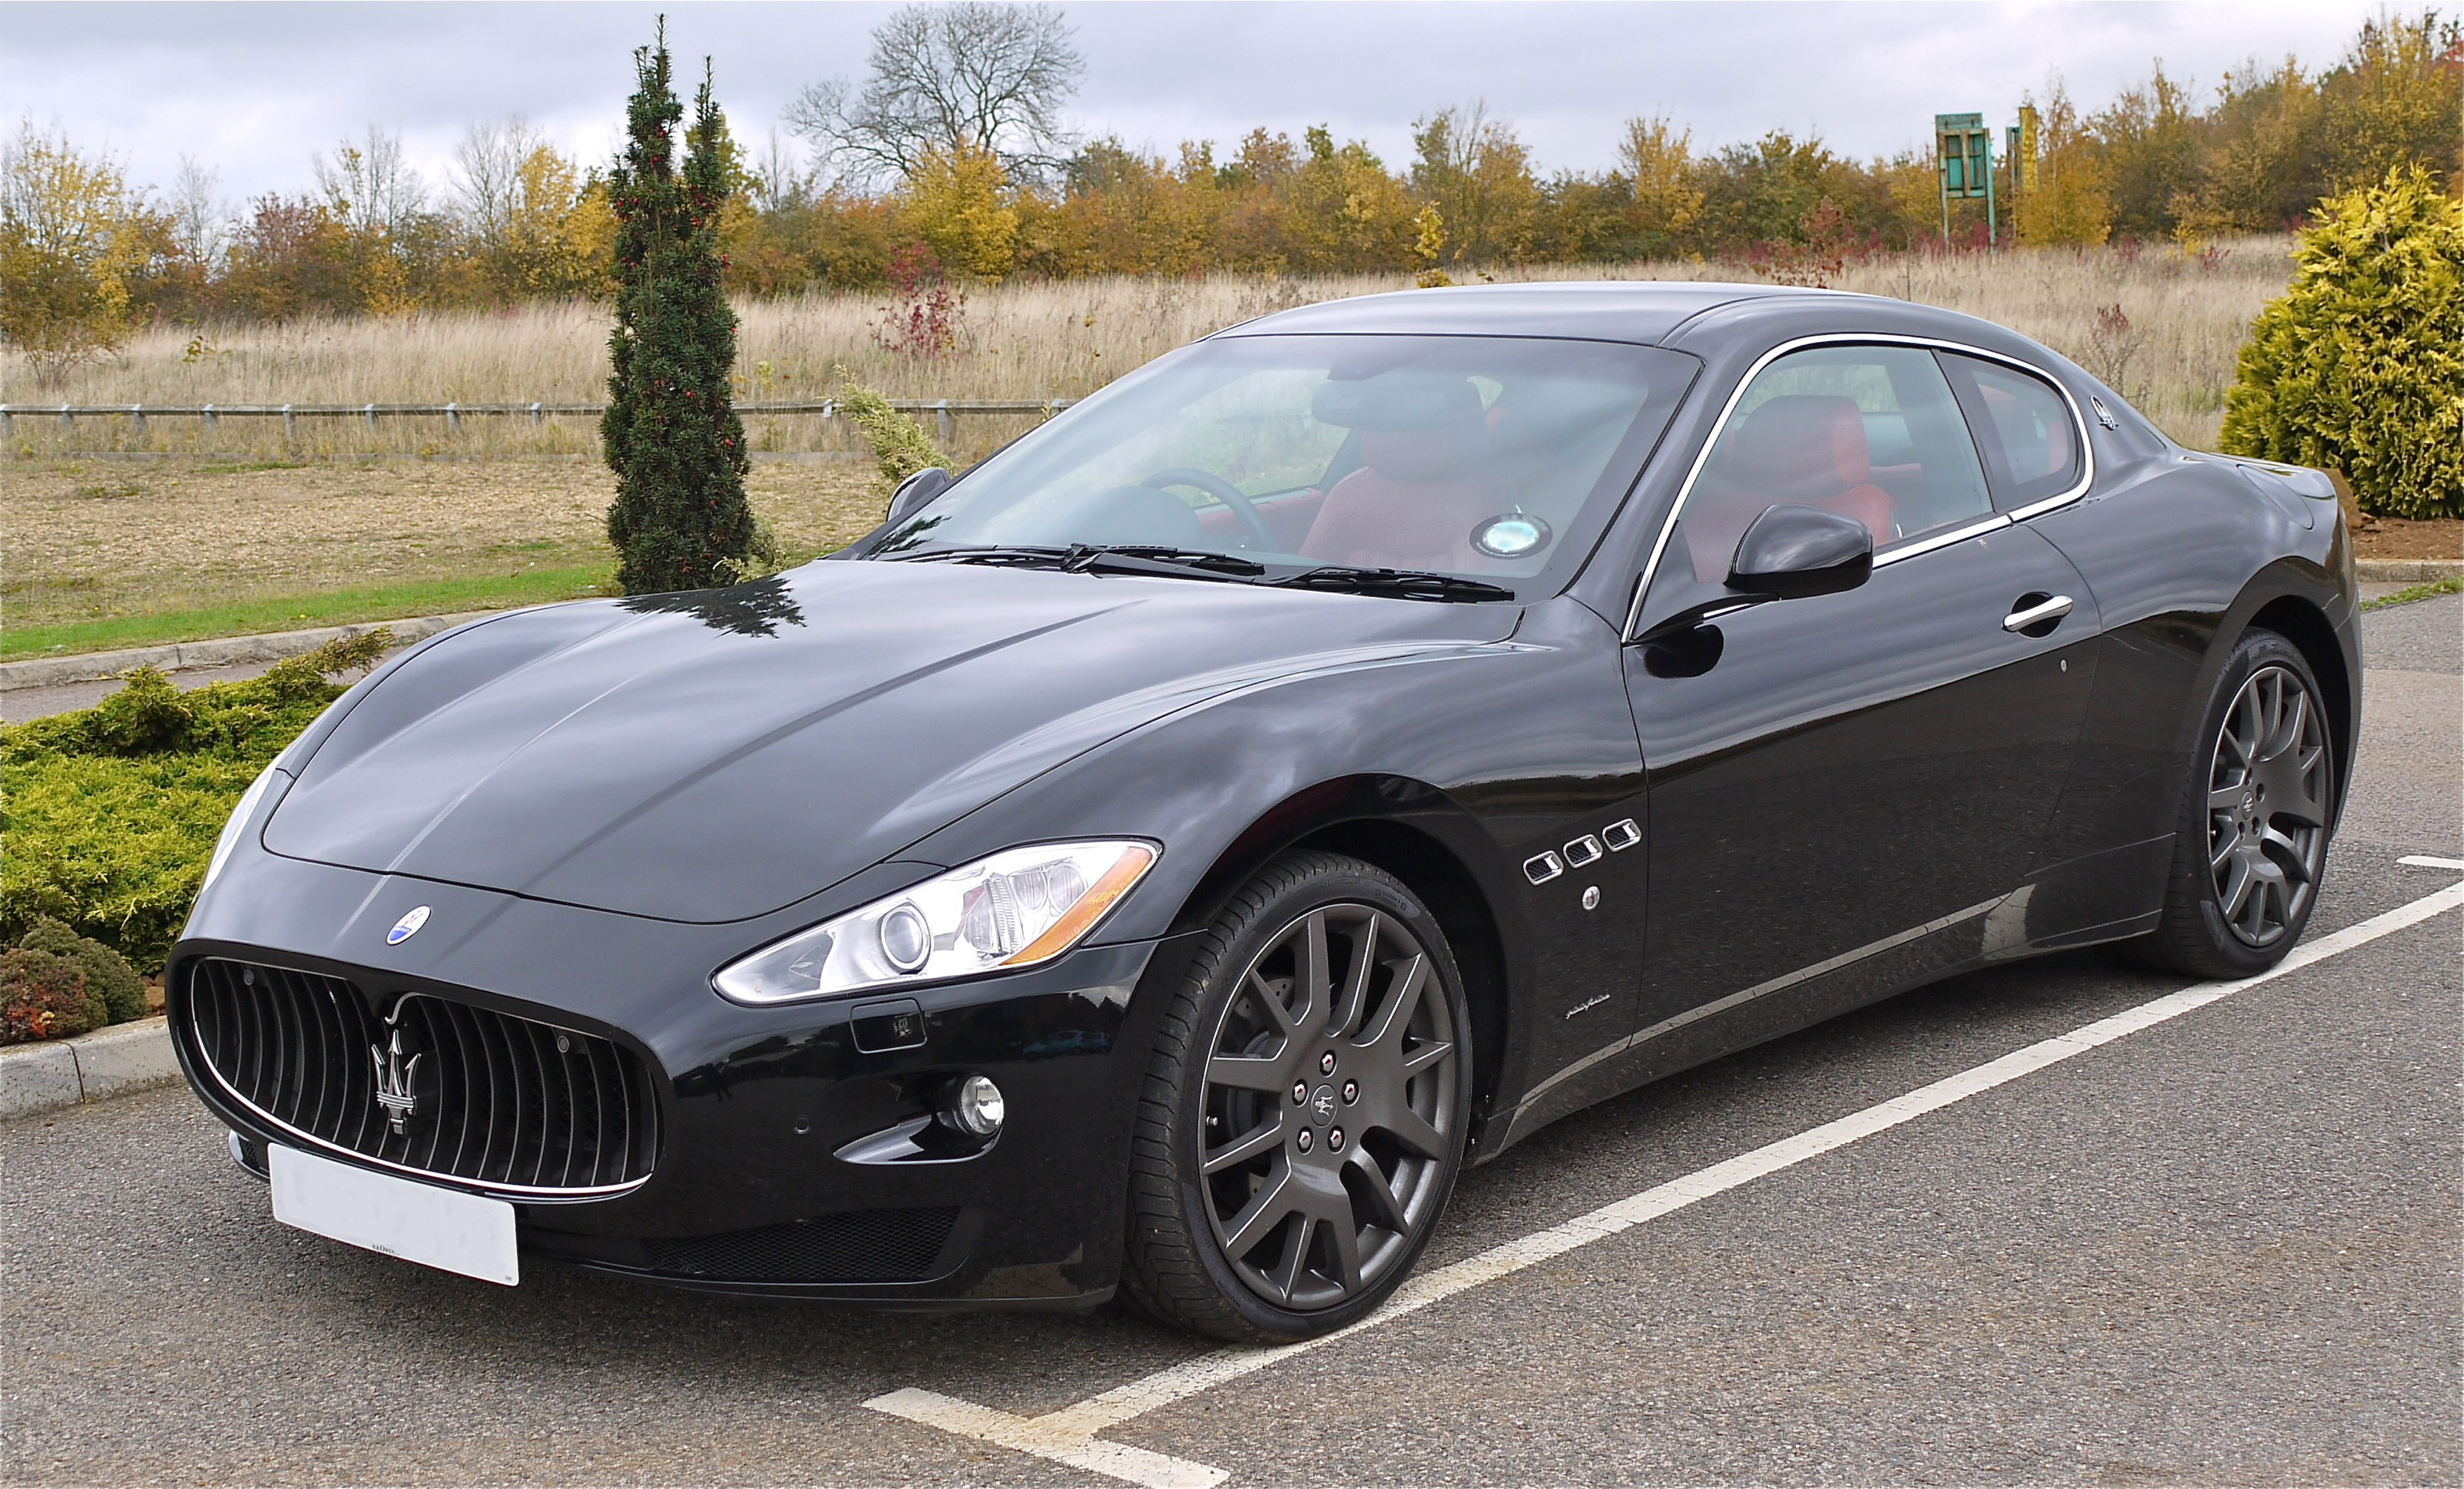 Maserati GranTurismo Reviews - Maserati GranTurismo Price, Photos ...